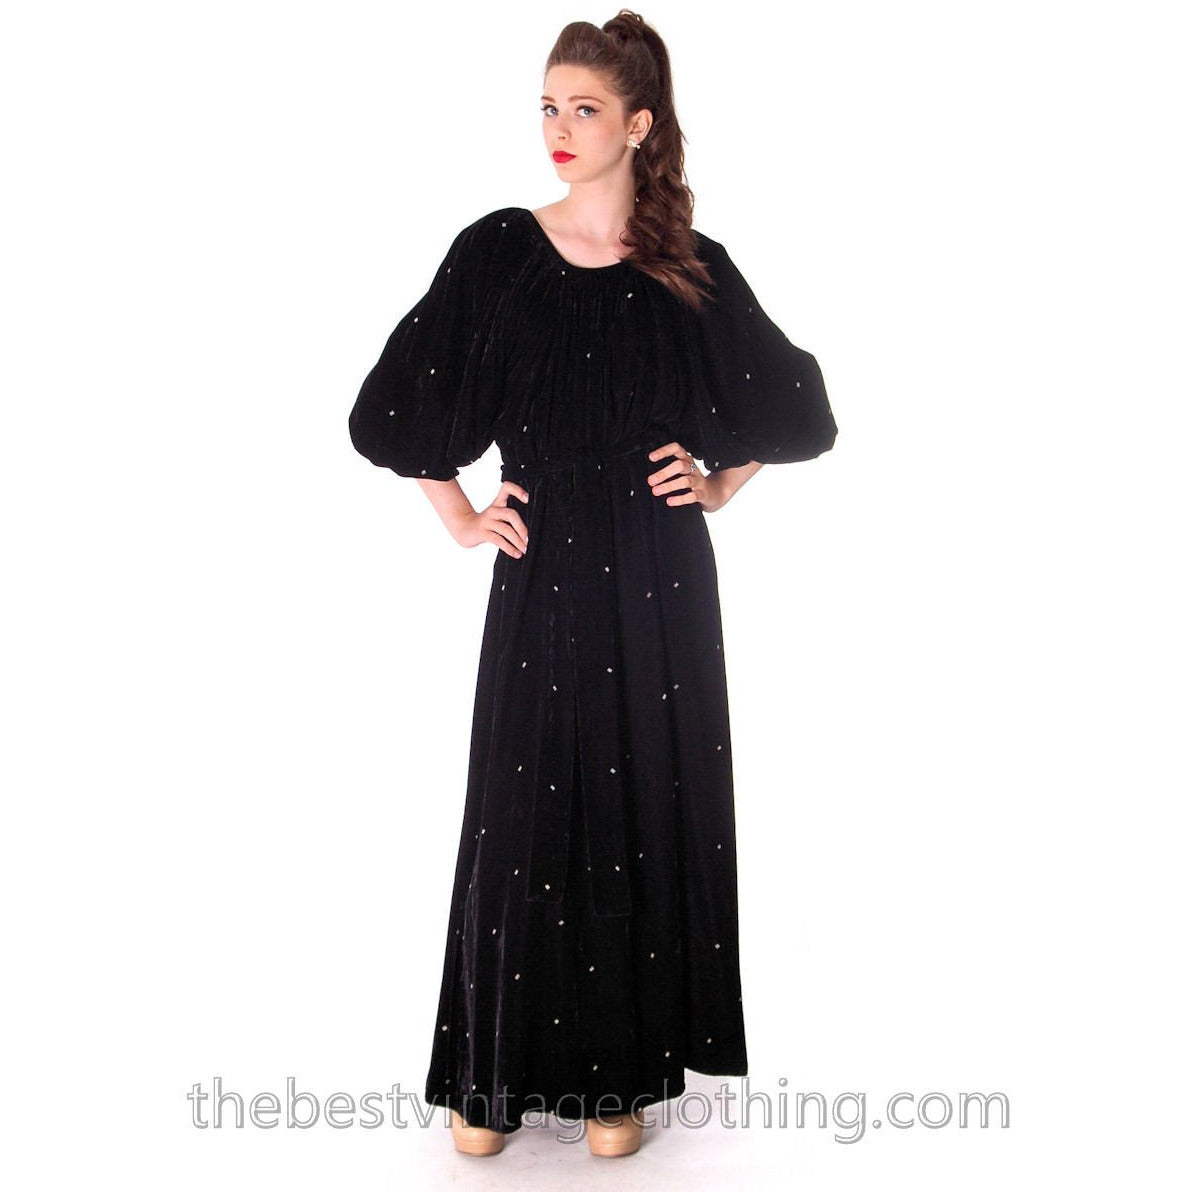 Stunning 1970s Vuokko Suomi Finland Black  Velvet Gown Diamond Pattern 1930s Style S-L - The Best Vintage Clothing  - 1